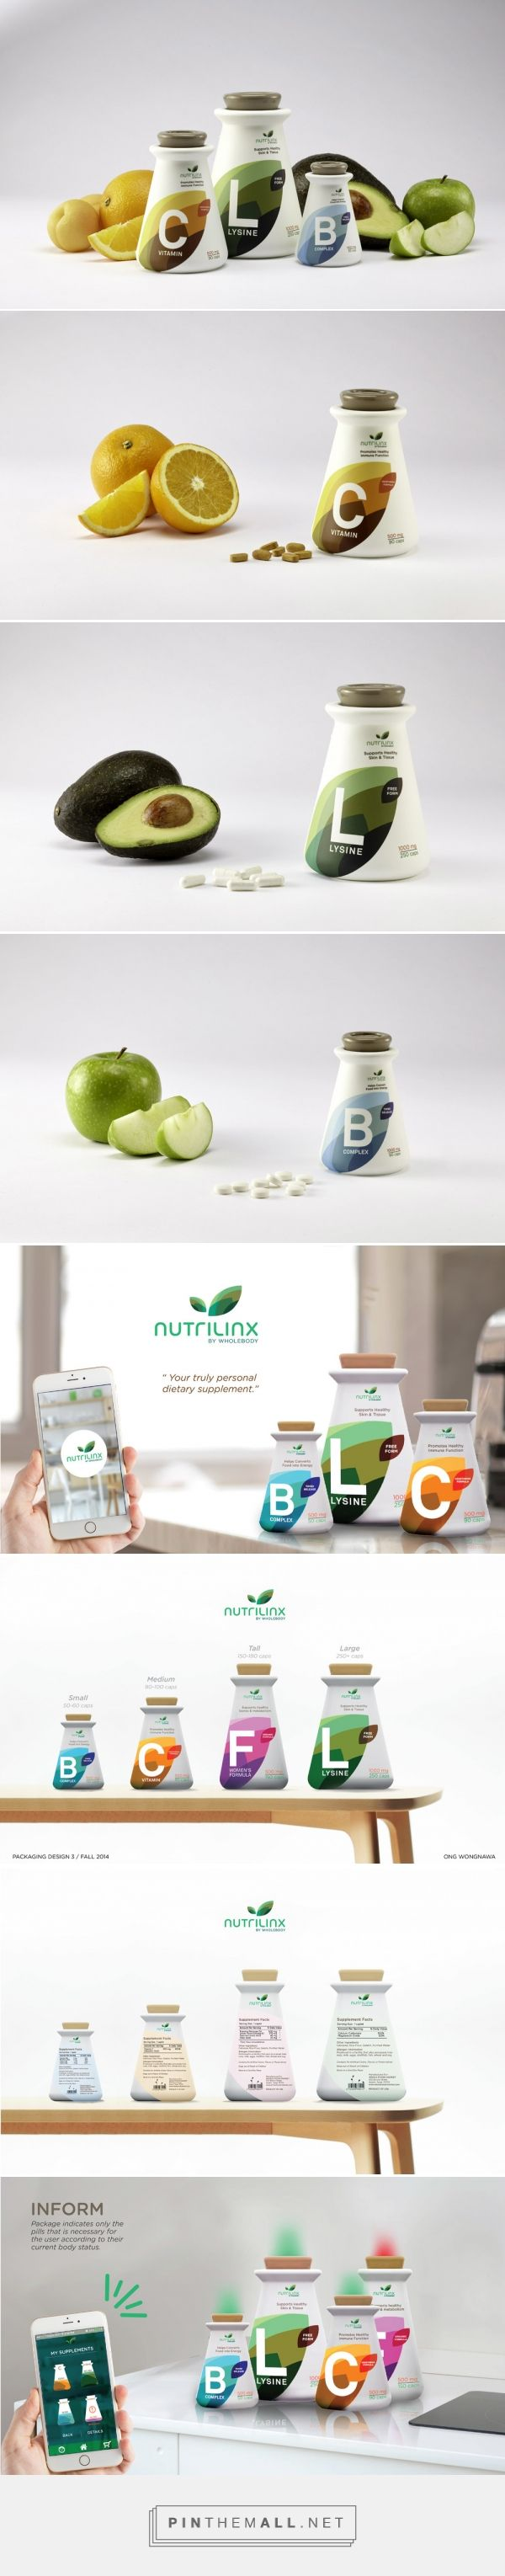 The Dieline Awards 2015: 3rd Place Student- Nutrilinx Dietary Supplements